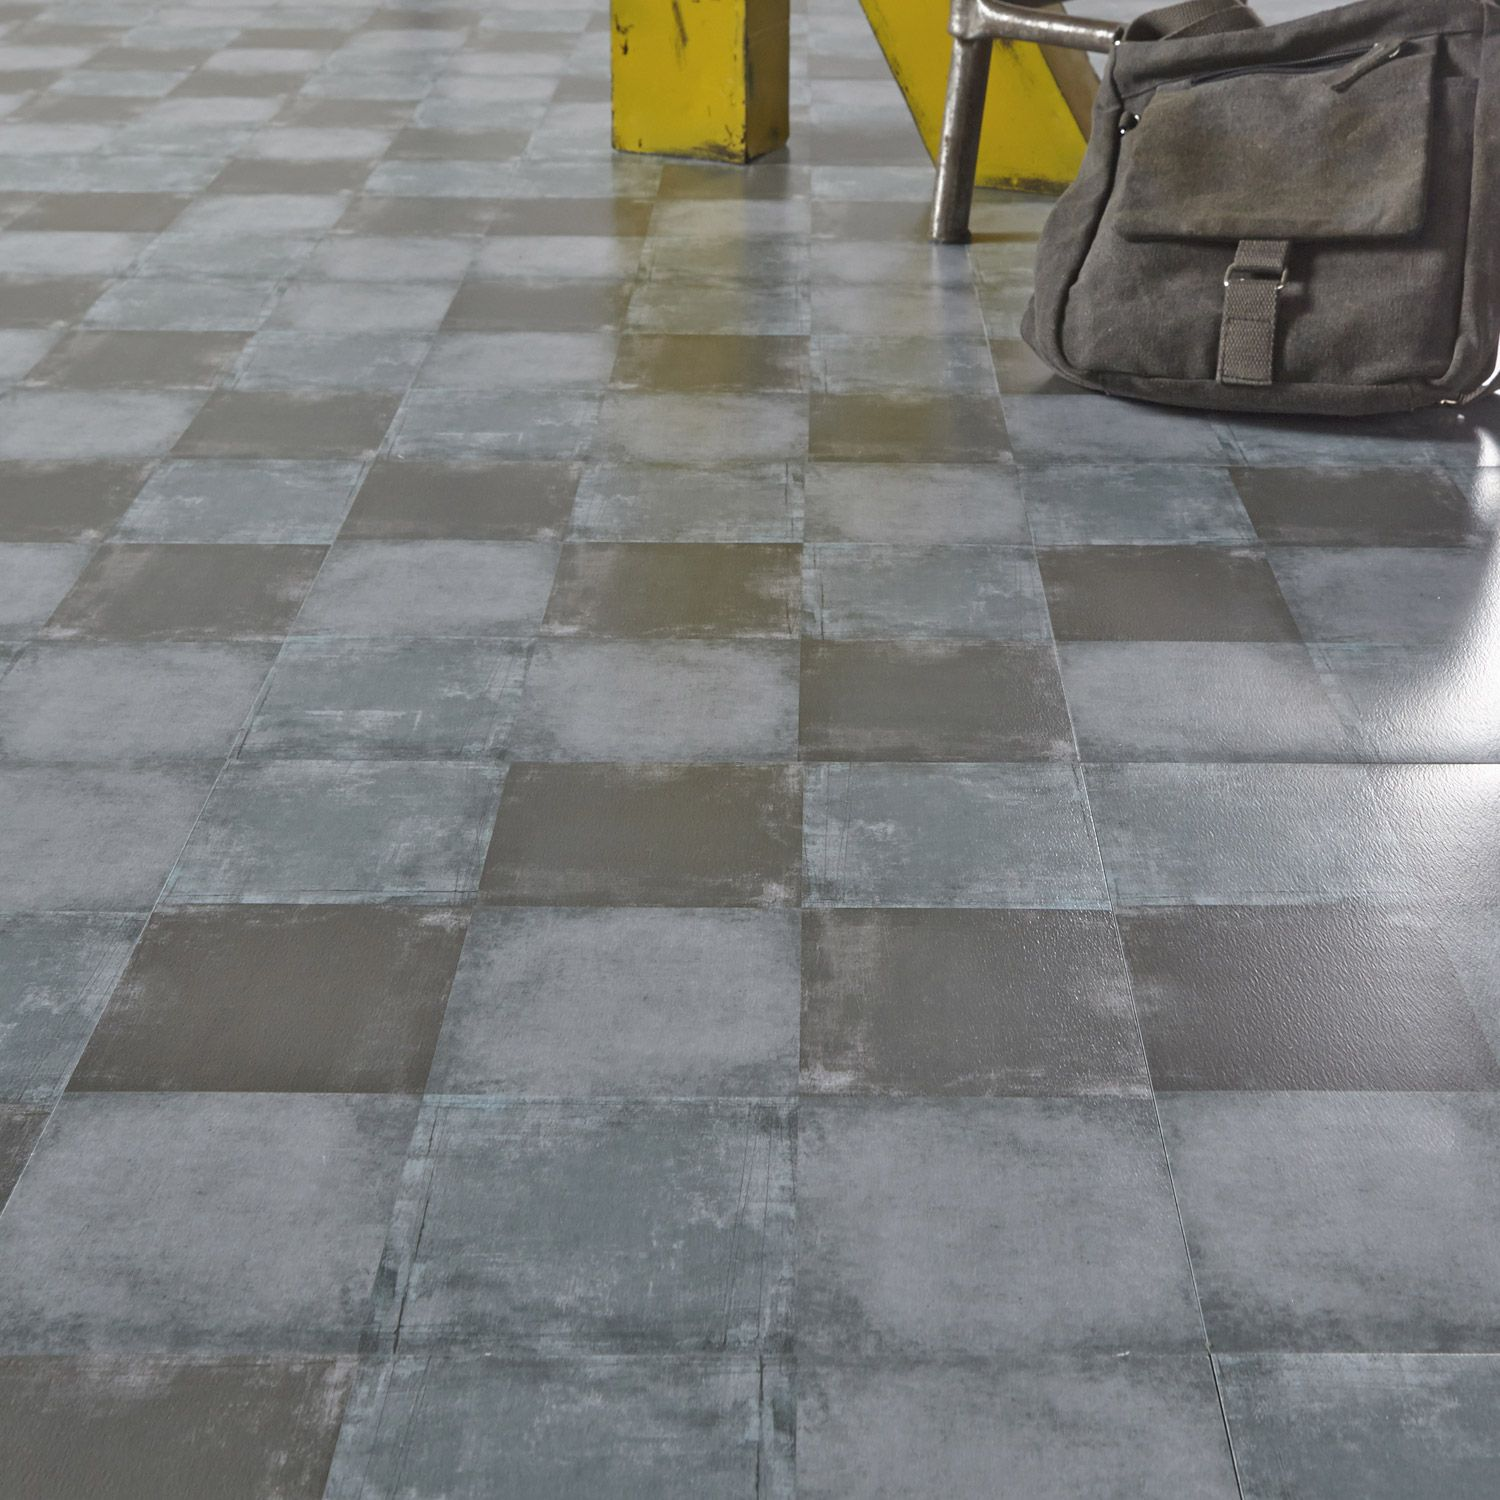 Dalle Pvc Adh Sive Design Square Medium Gerflor 30 5 X 30